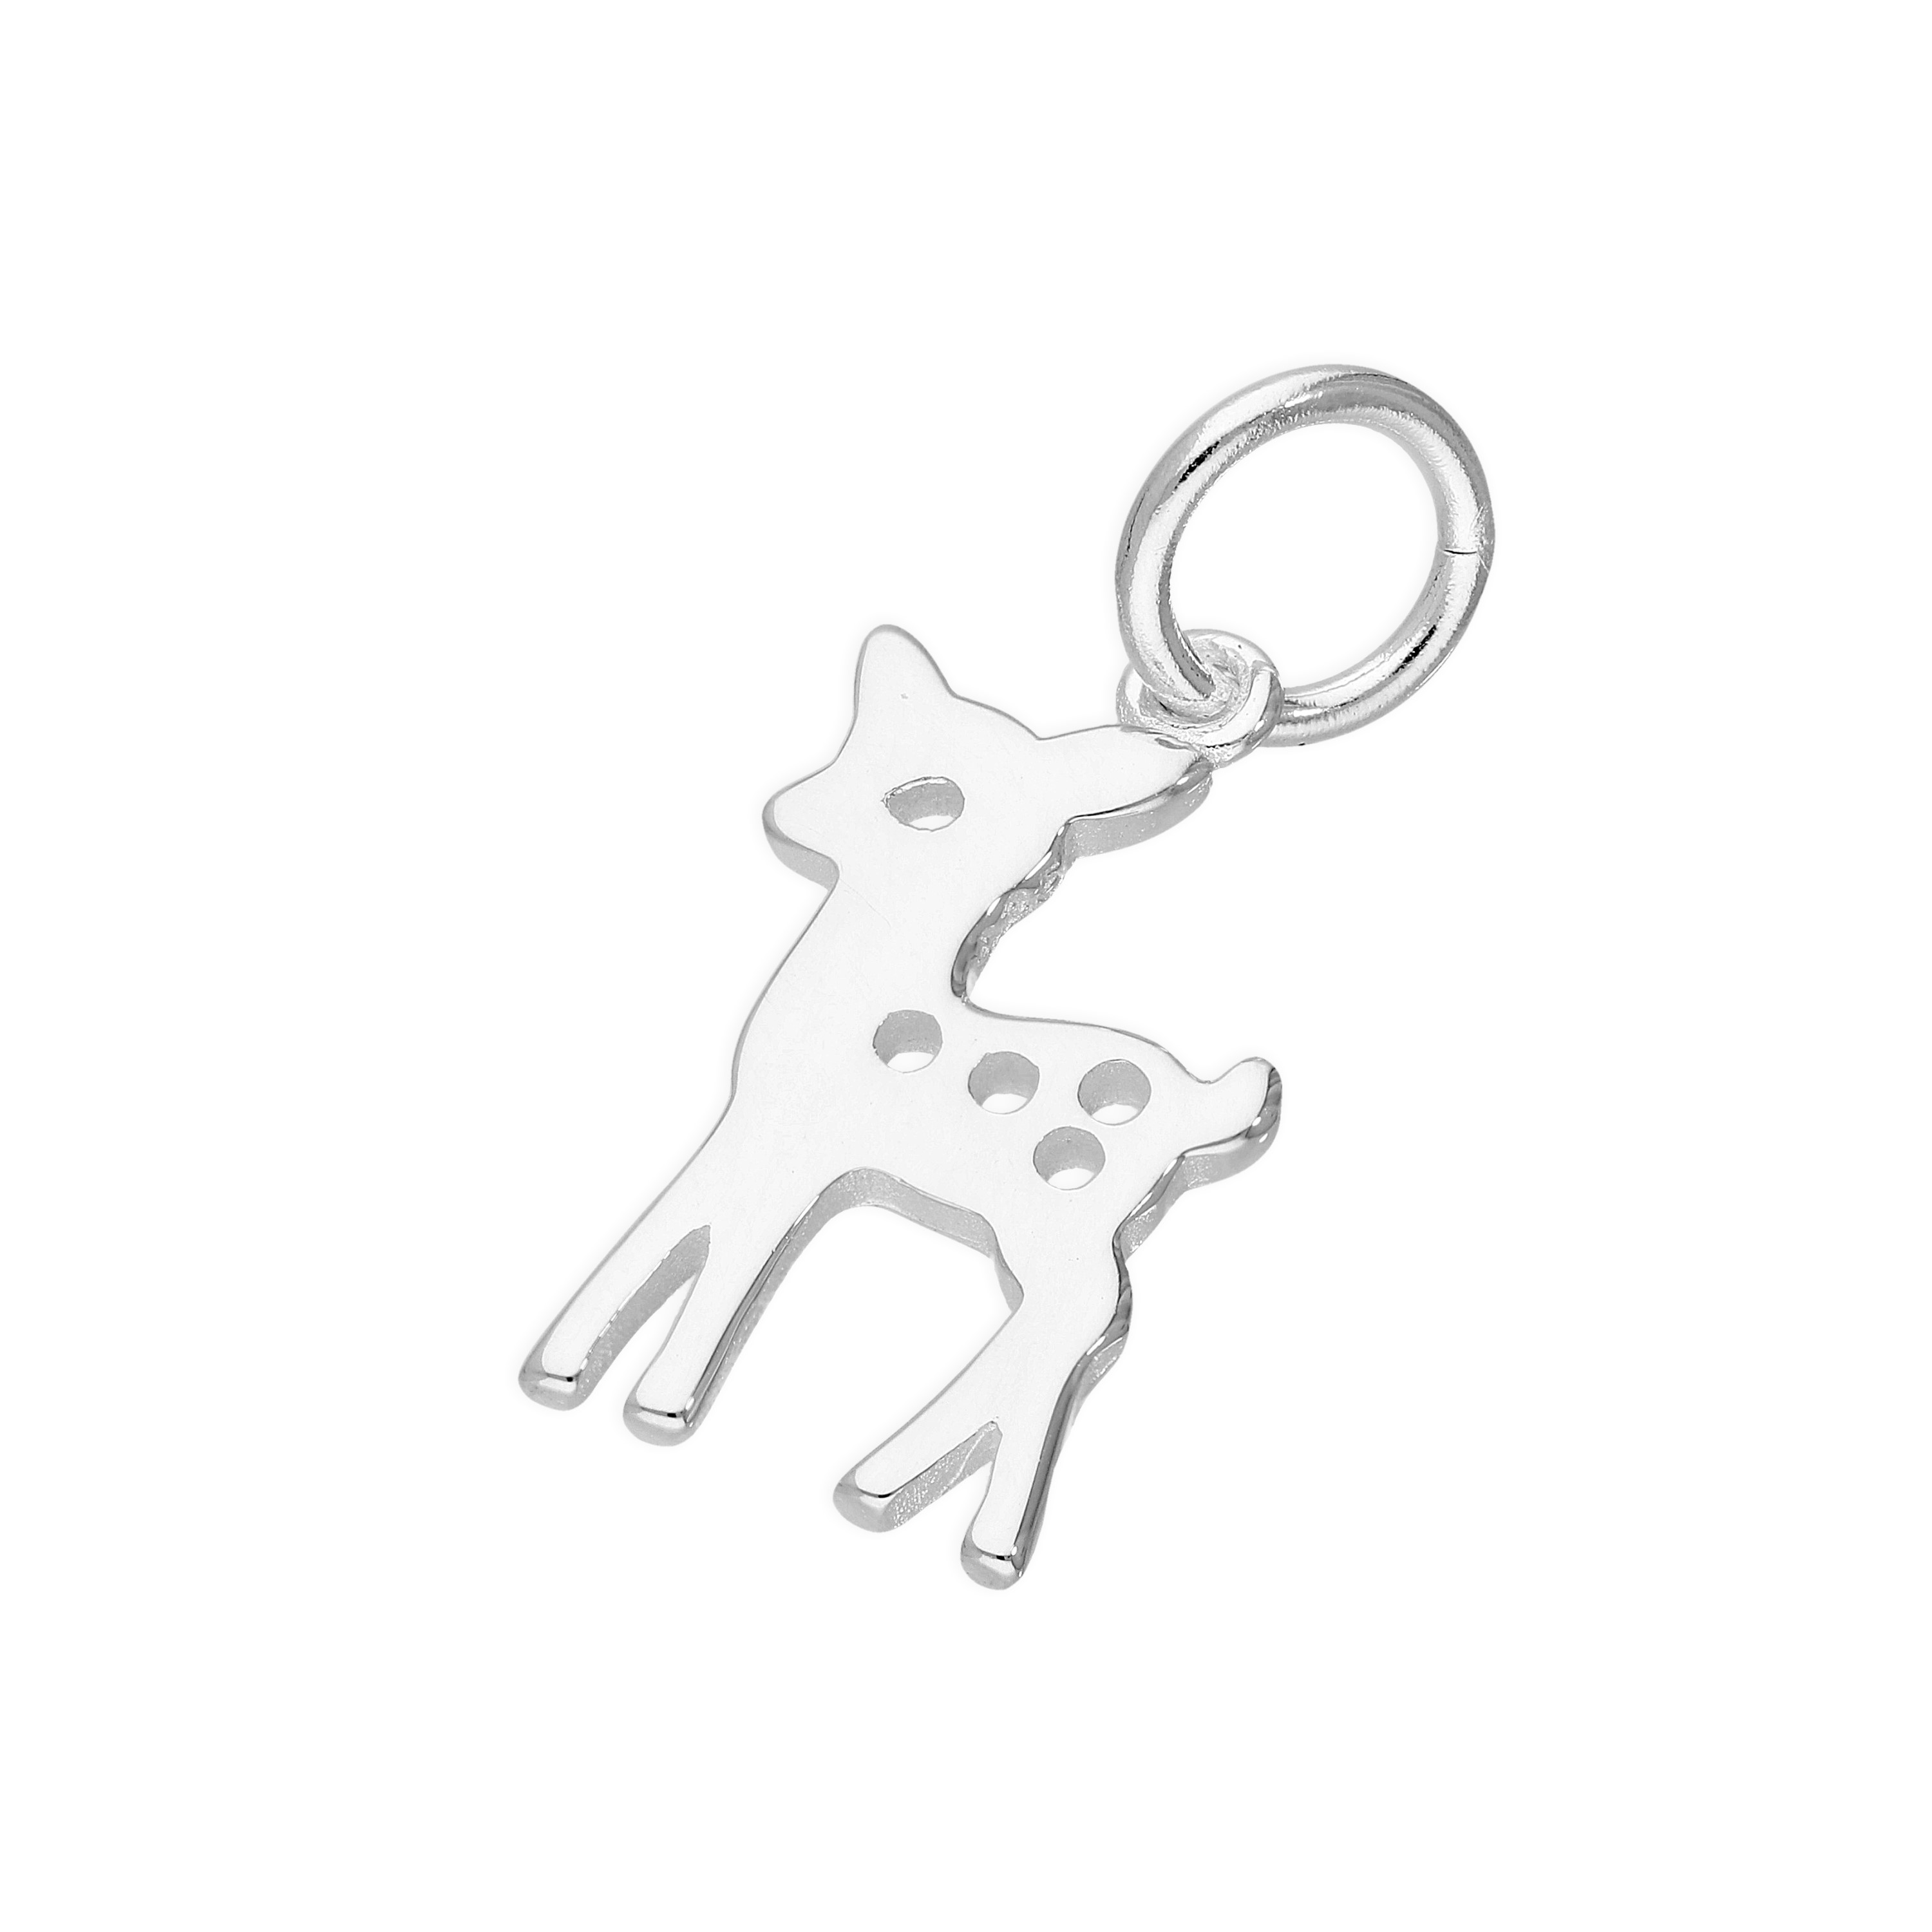 Real 925 Sterling Silver Northern Star Nativity Clip On